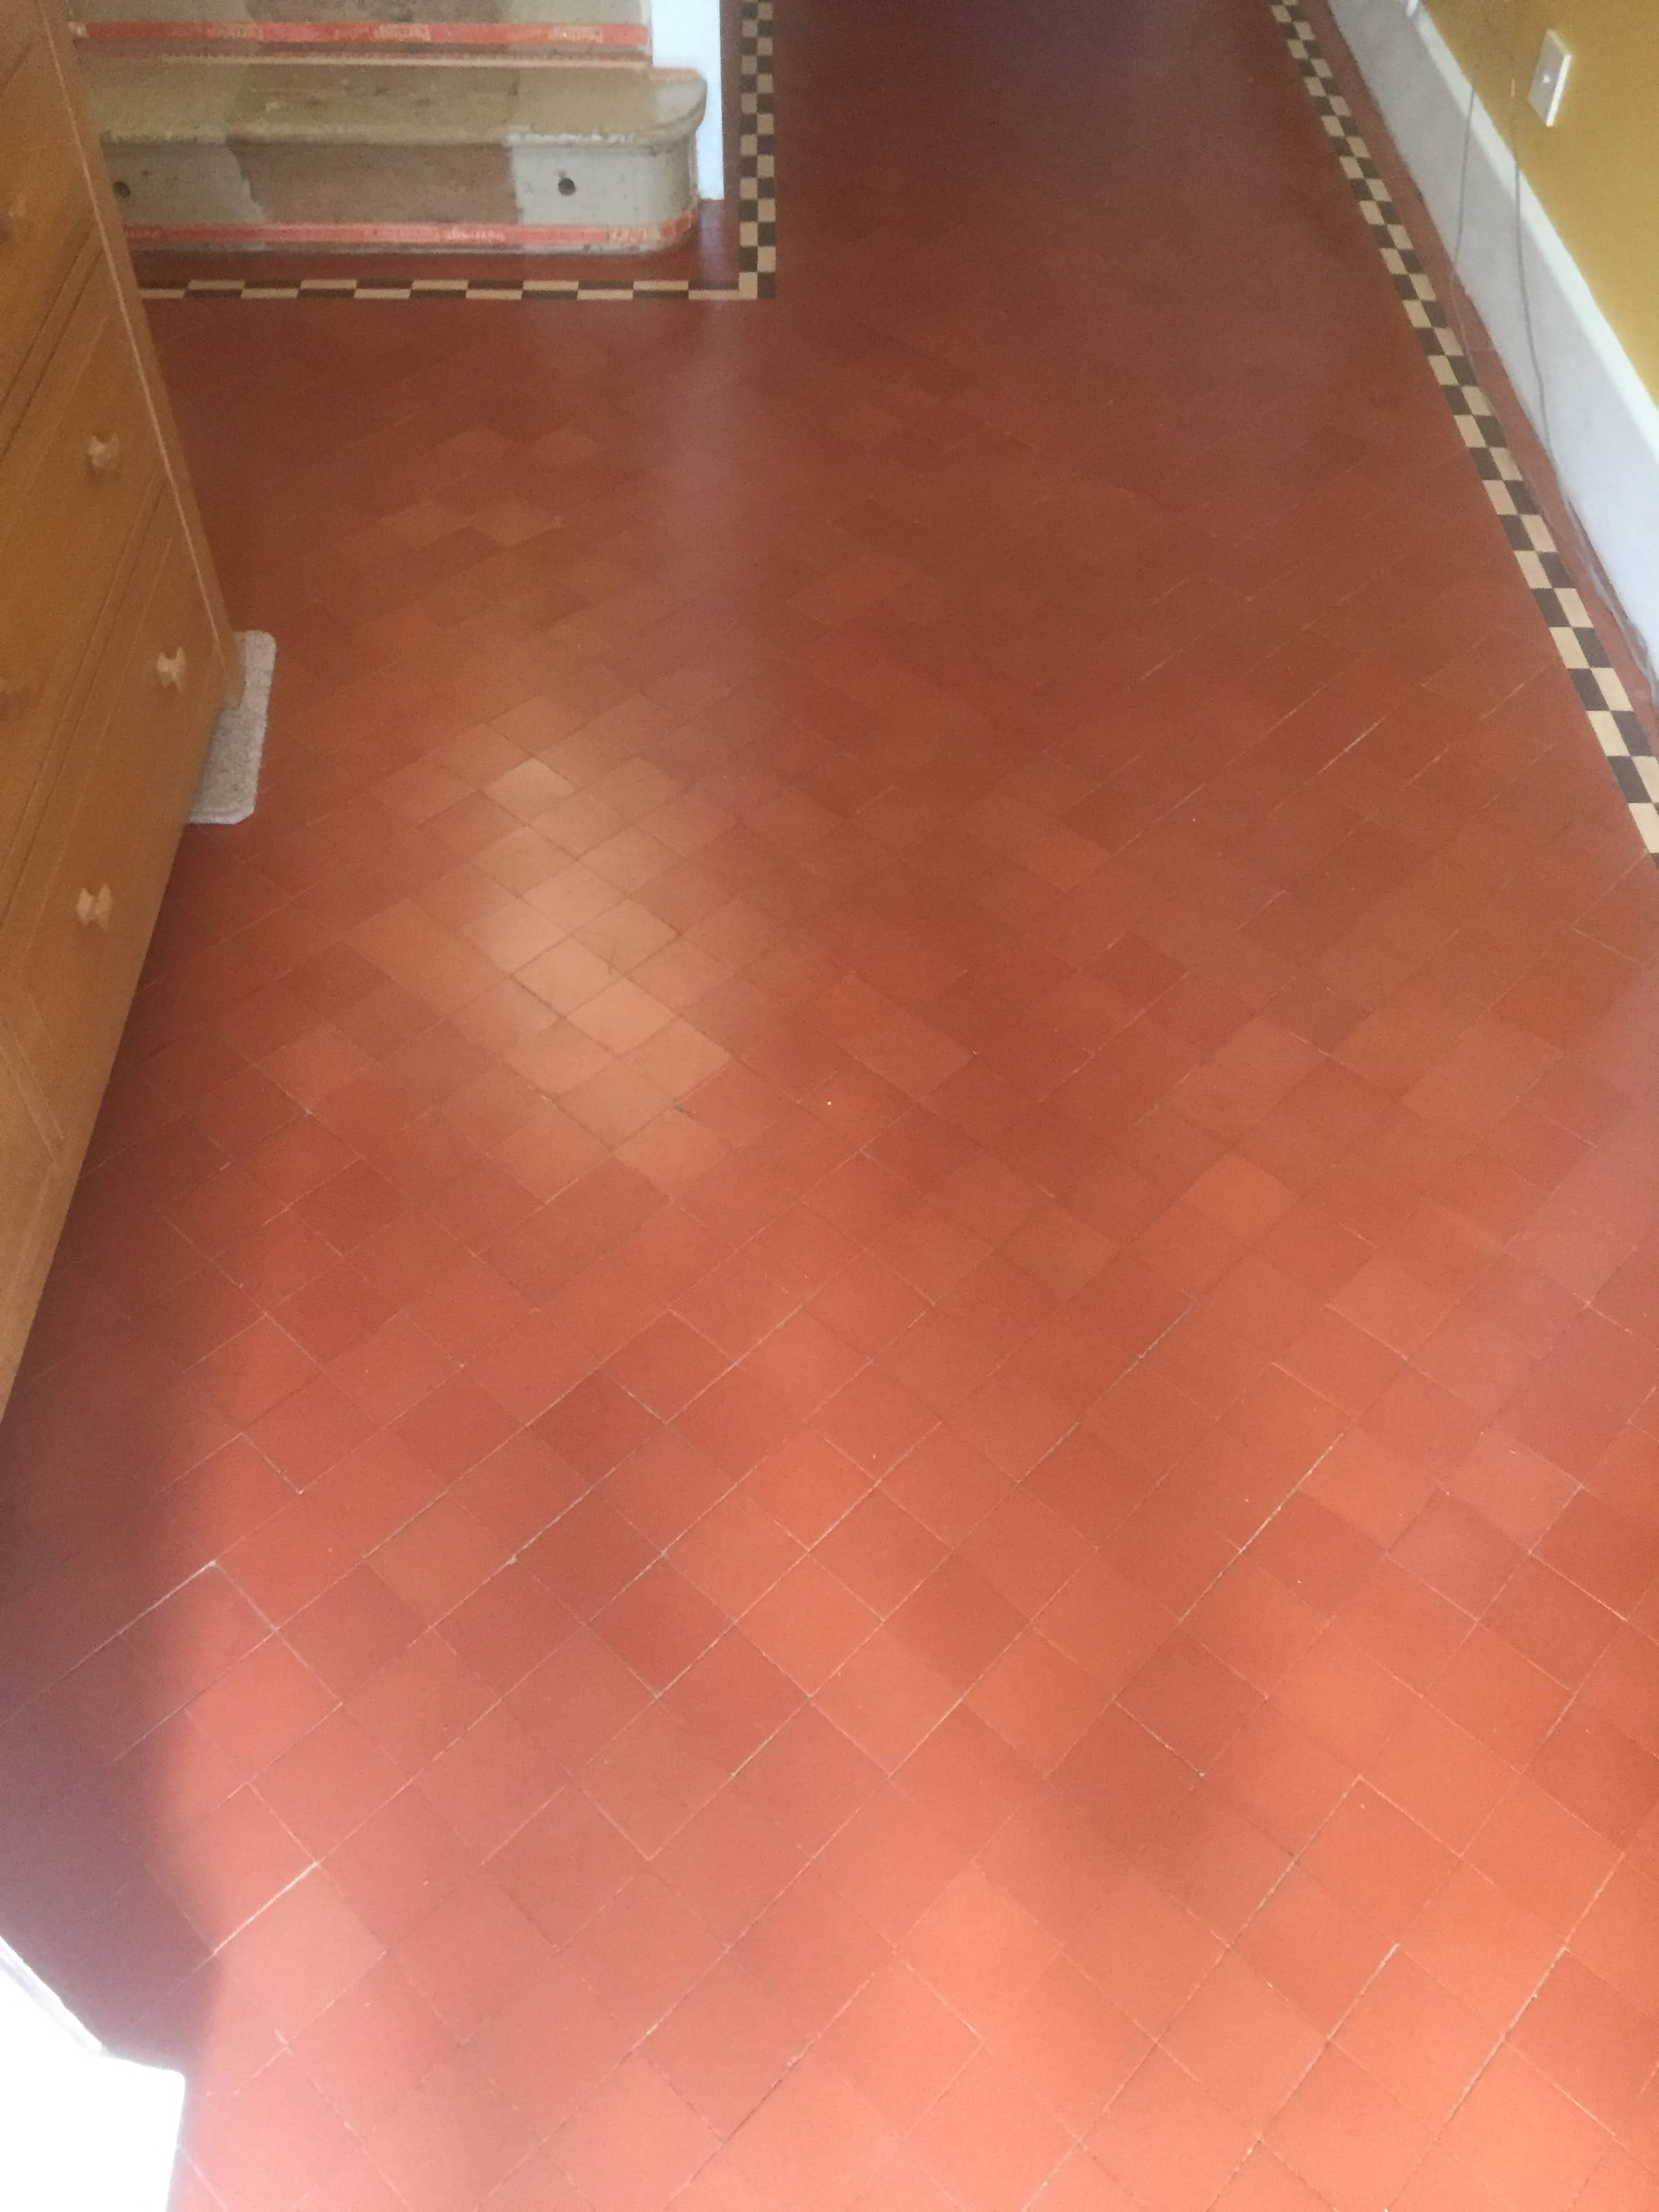 Quarry tiled Hallway floor after renovation in Didcot